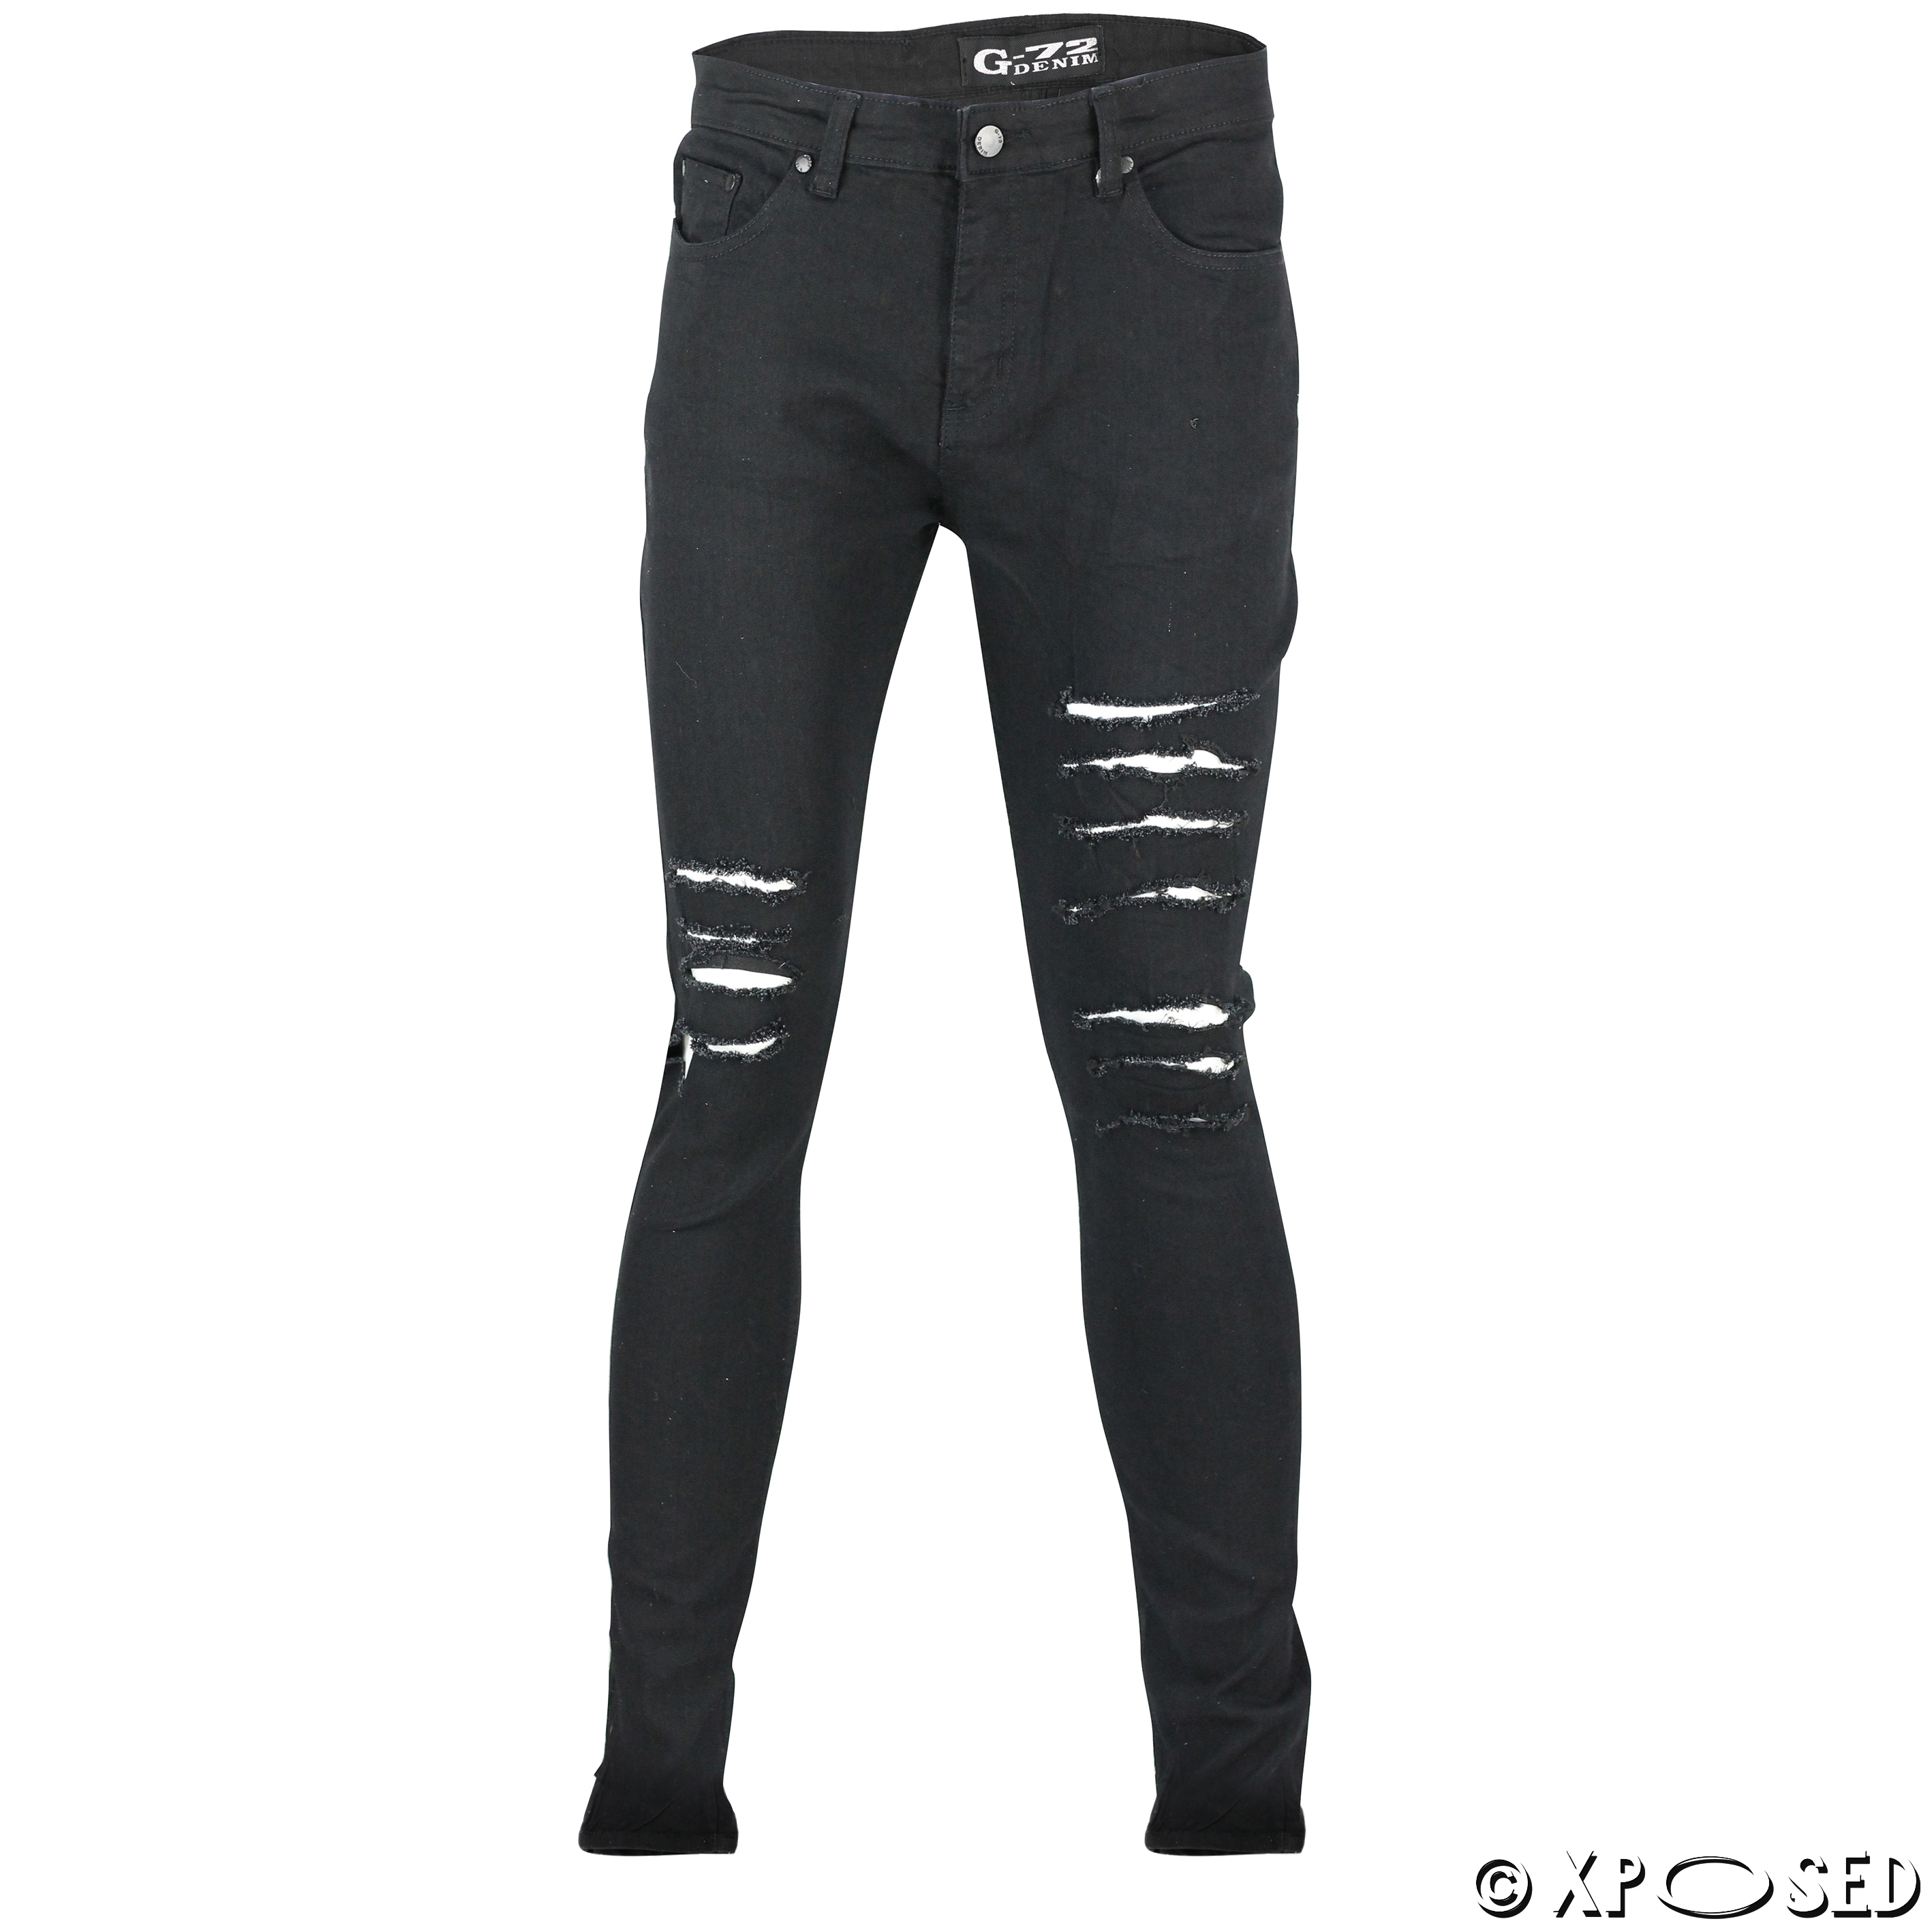 Old Navy has a collection of ripped skinny jeans that provides a stylish look and a comfortable fit. Choose from ripped skinny jeans in a wide selection of fabulous styles and colors. Skinny Built-In Flex Distressed Jeans for Men. $ Extra 10% Off with Code STYLE. Distressed Raw-Edge Black Rockstar Jeggings for Girls. $ 11%.